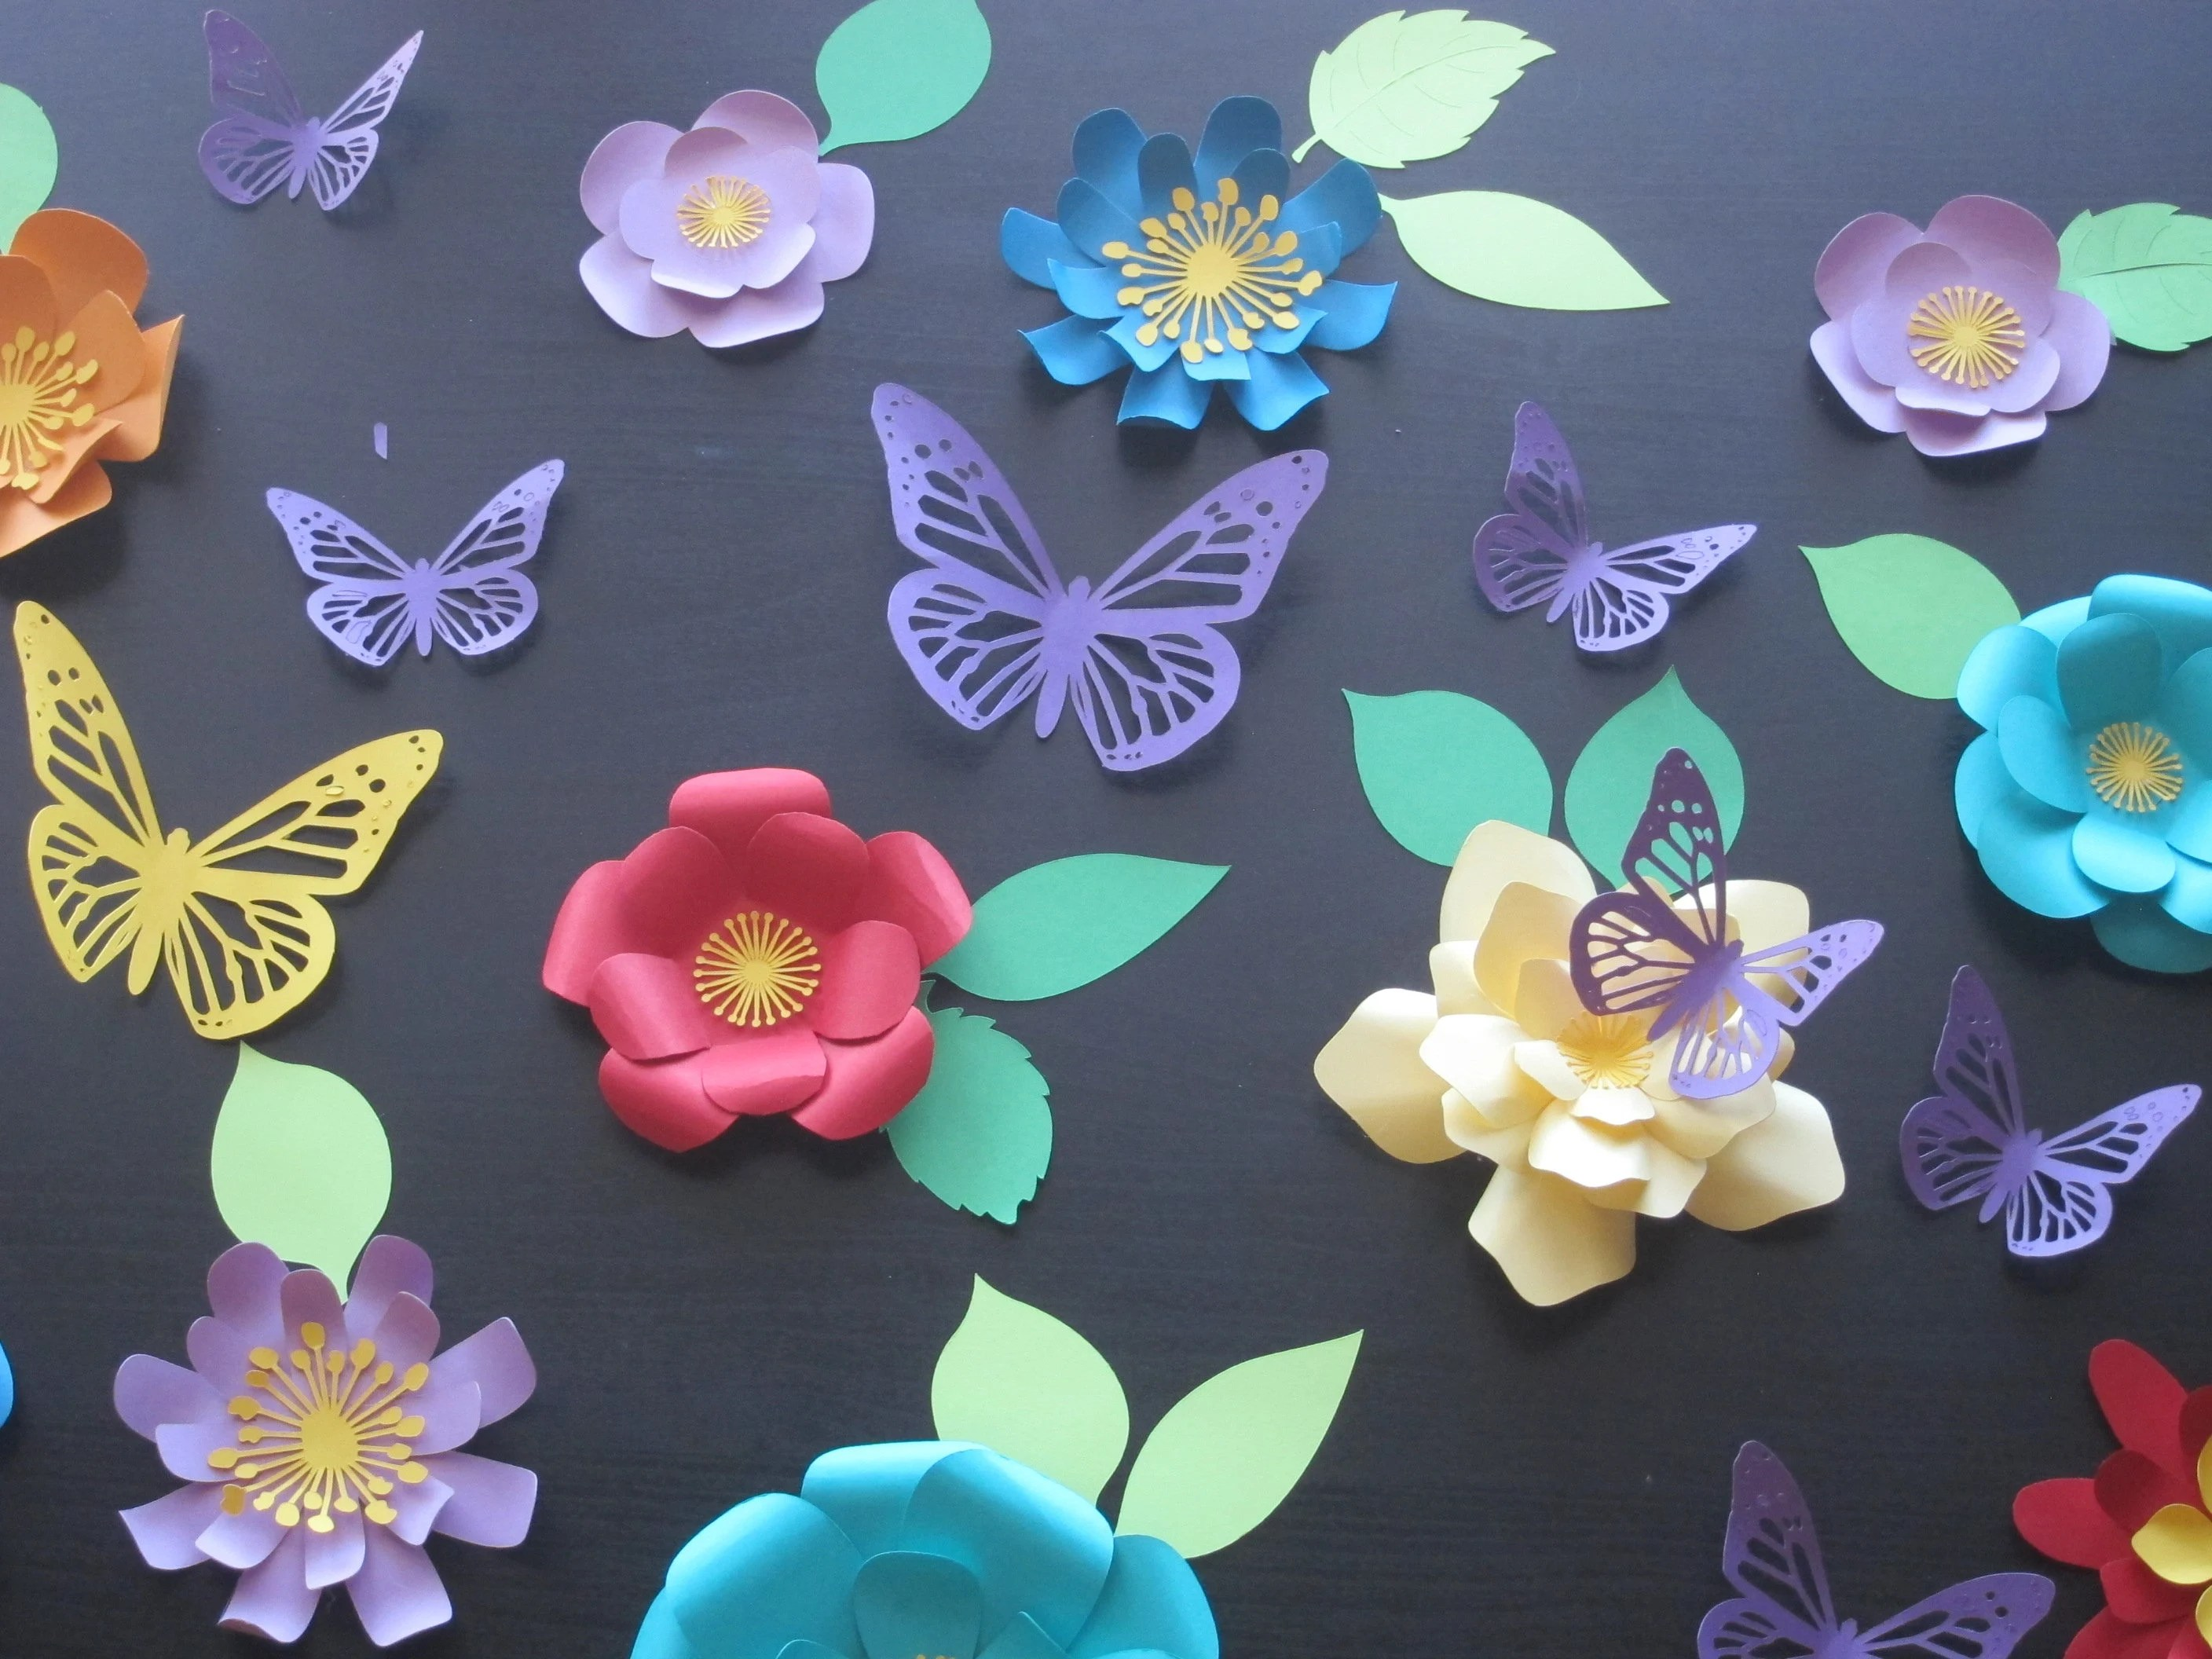 Wall Decoration Using Colored Paper